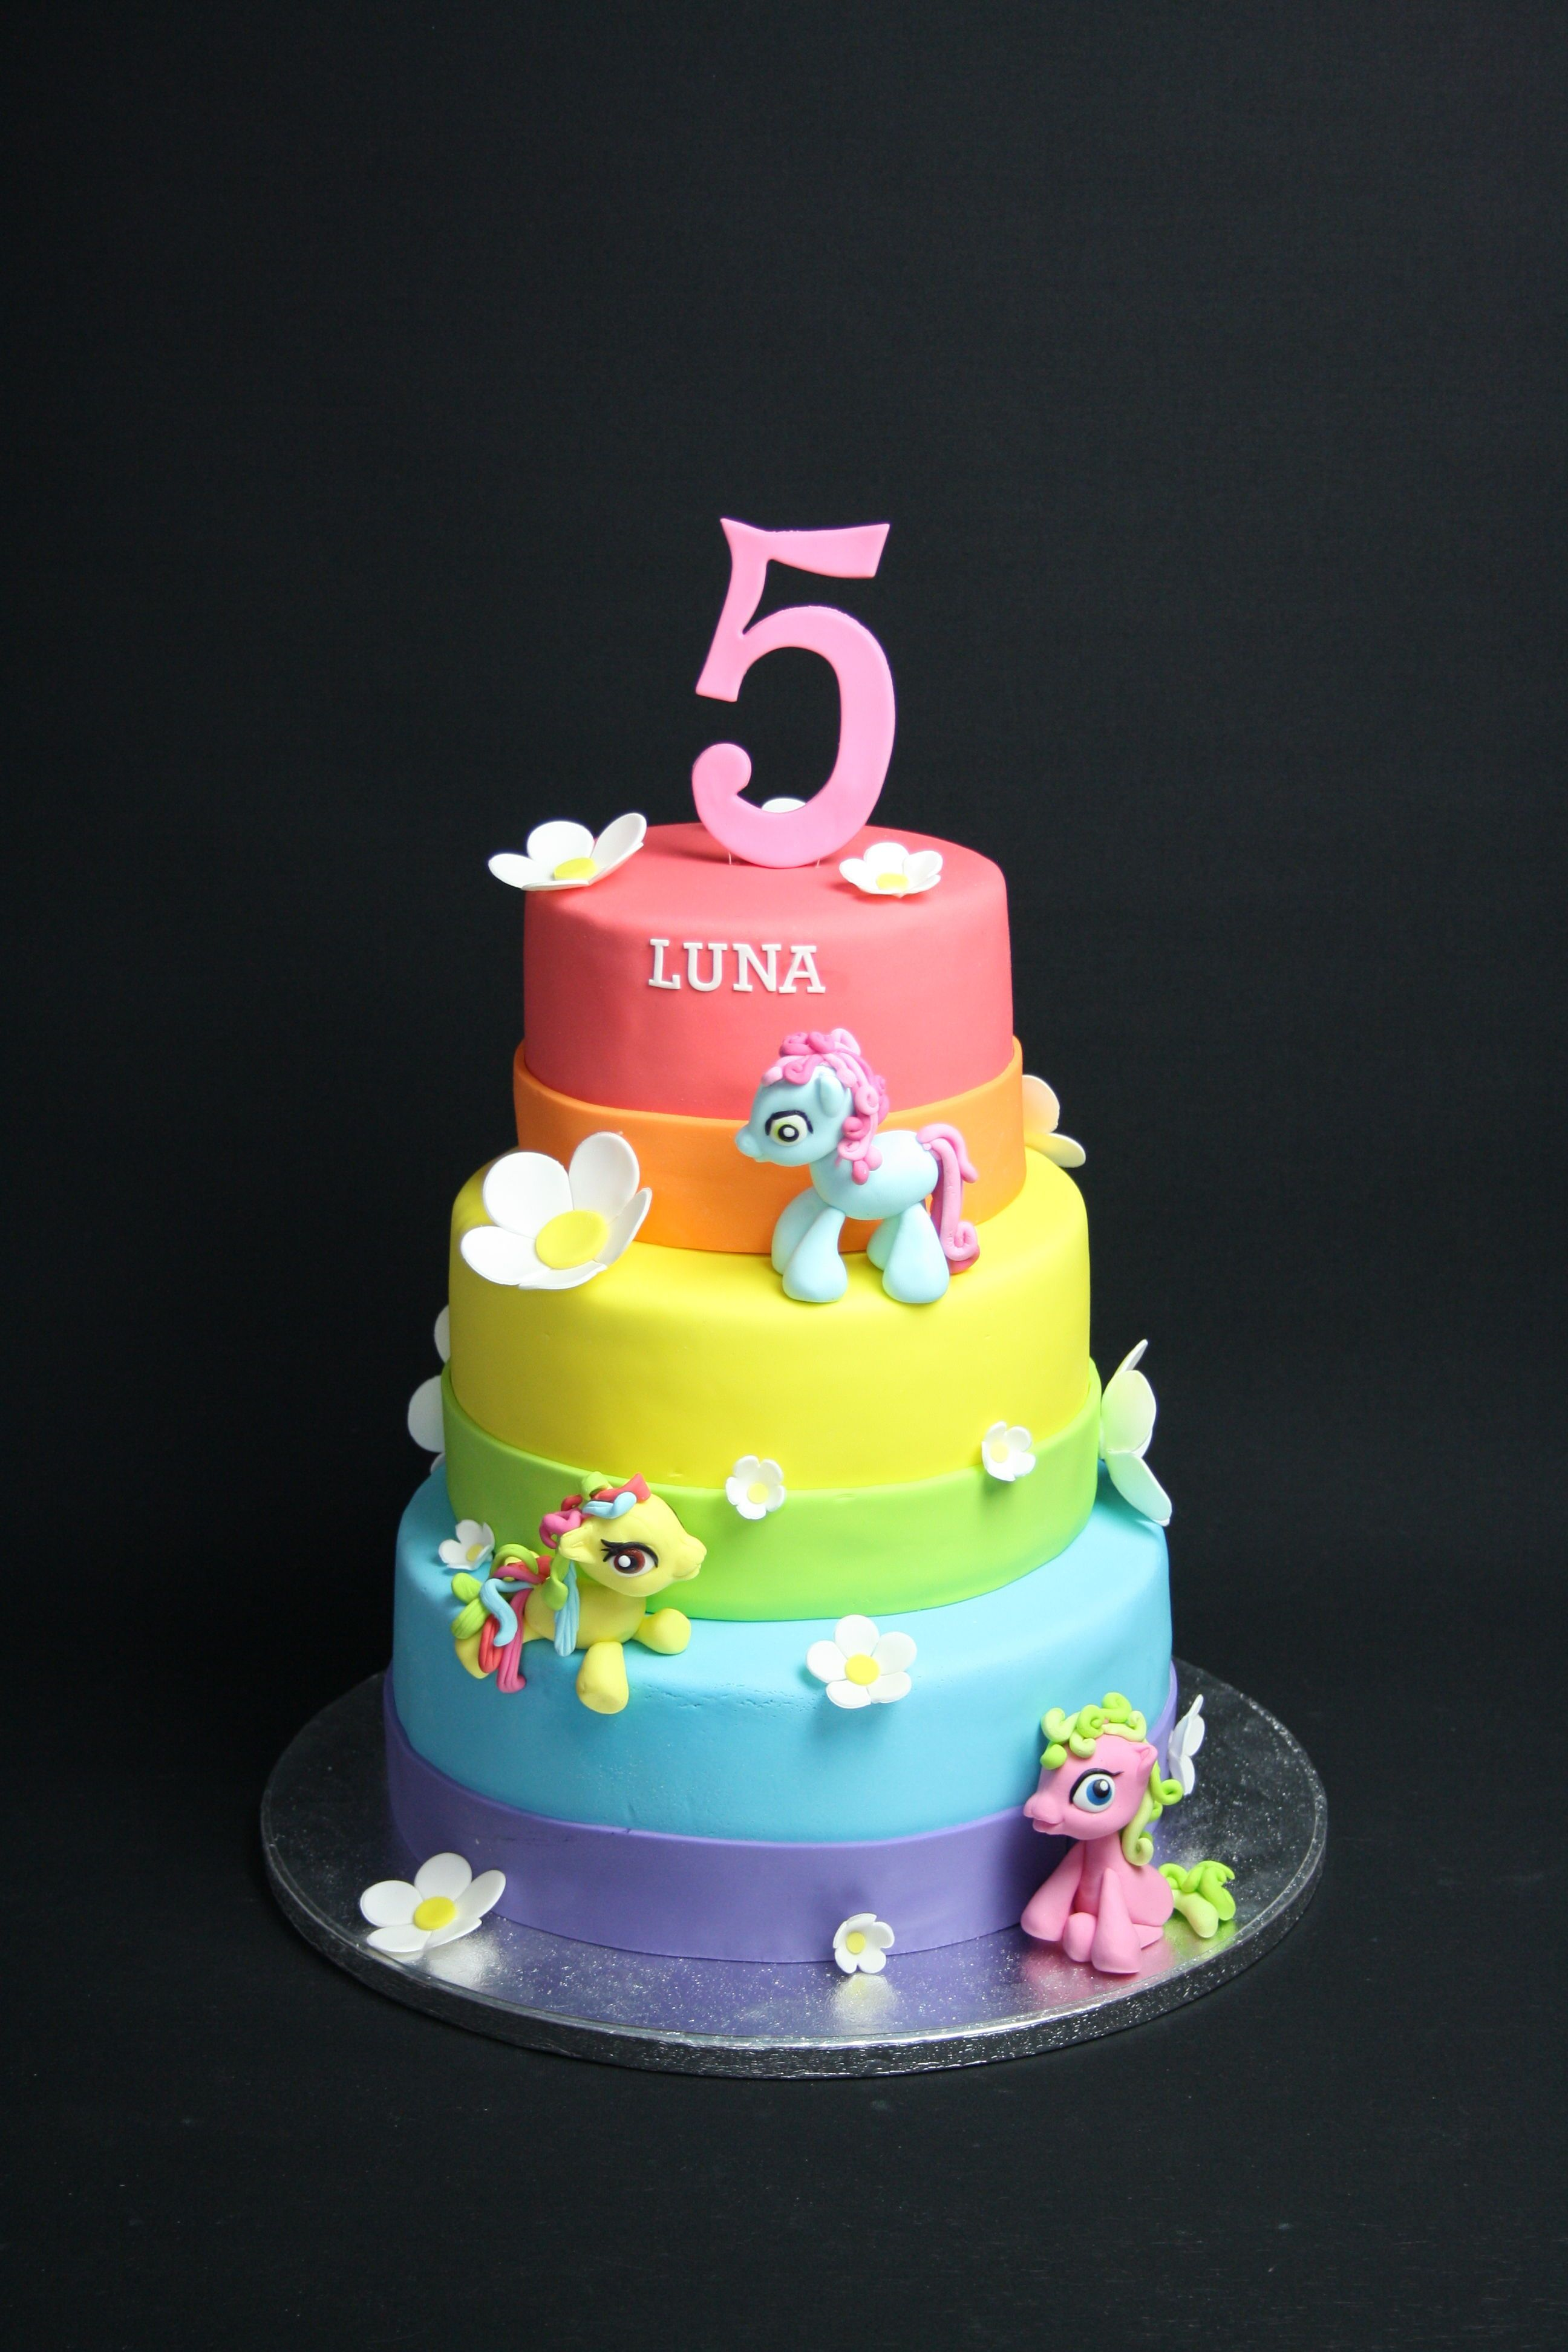 - Usually my cakes are more over the top, so this time I wanted to make it simple but powerful in colour. Luna was happy with her ' my little pony' cake.